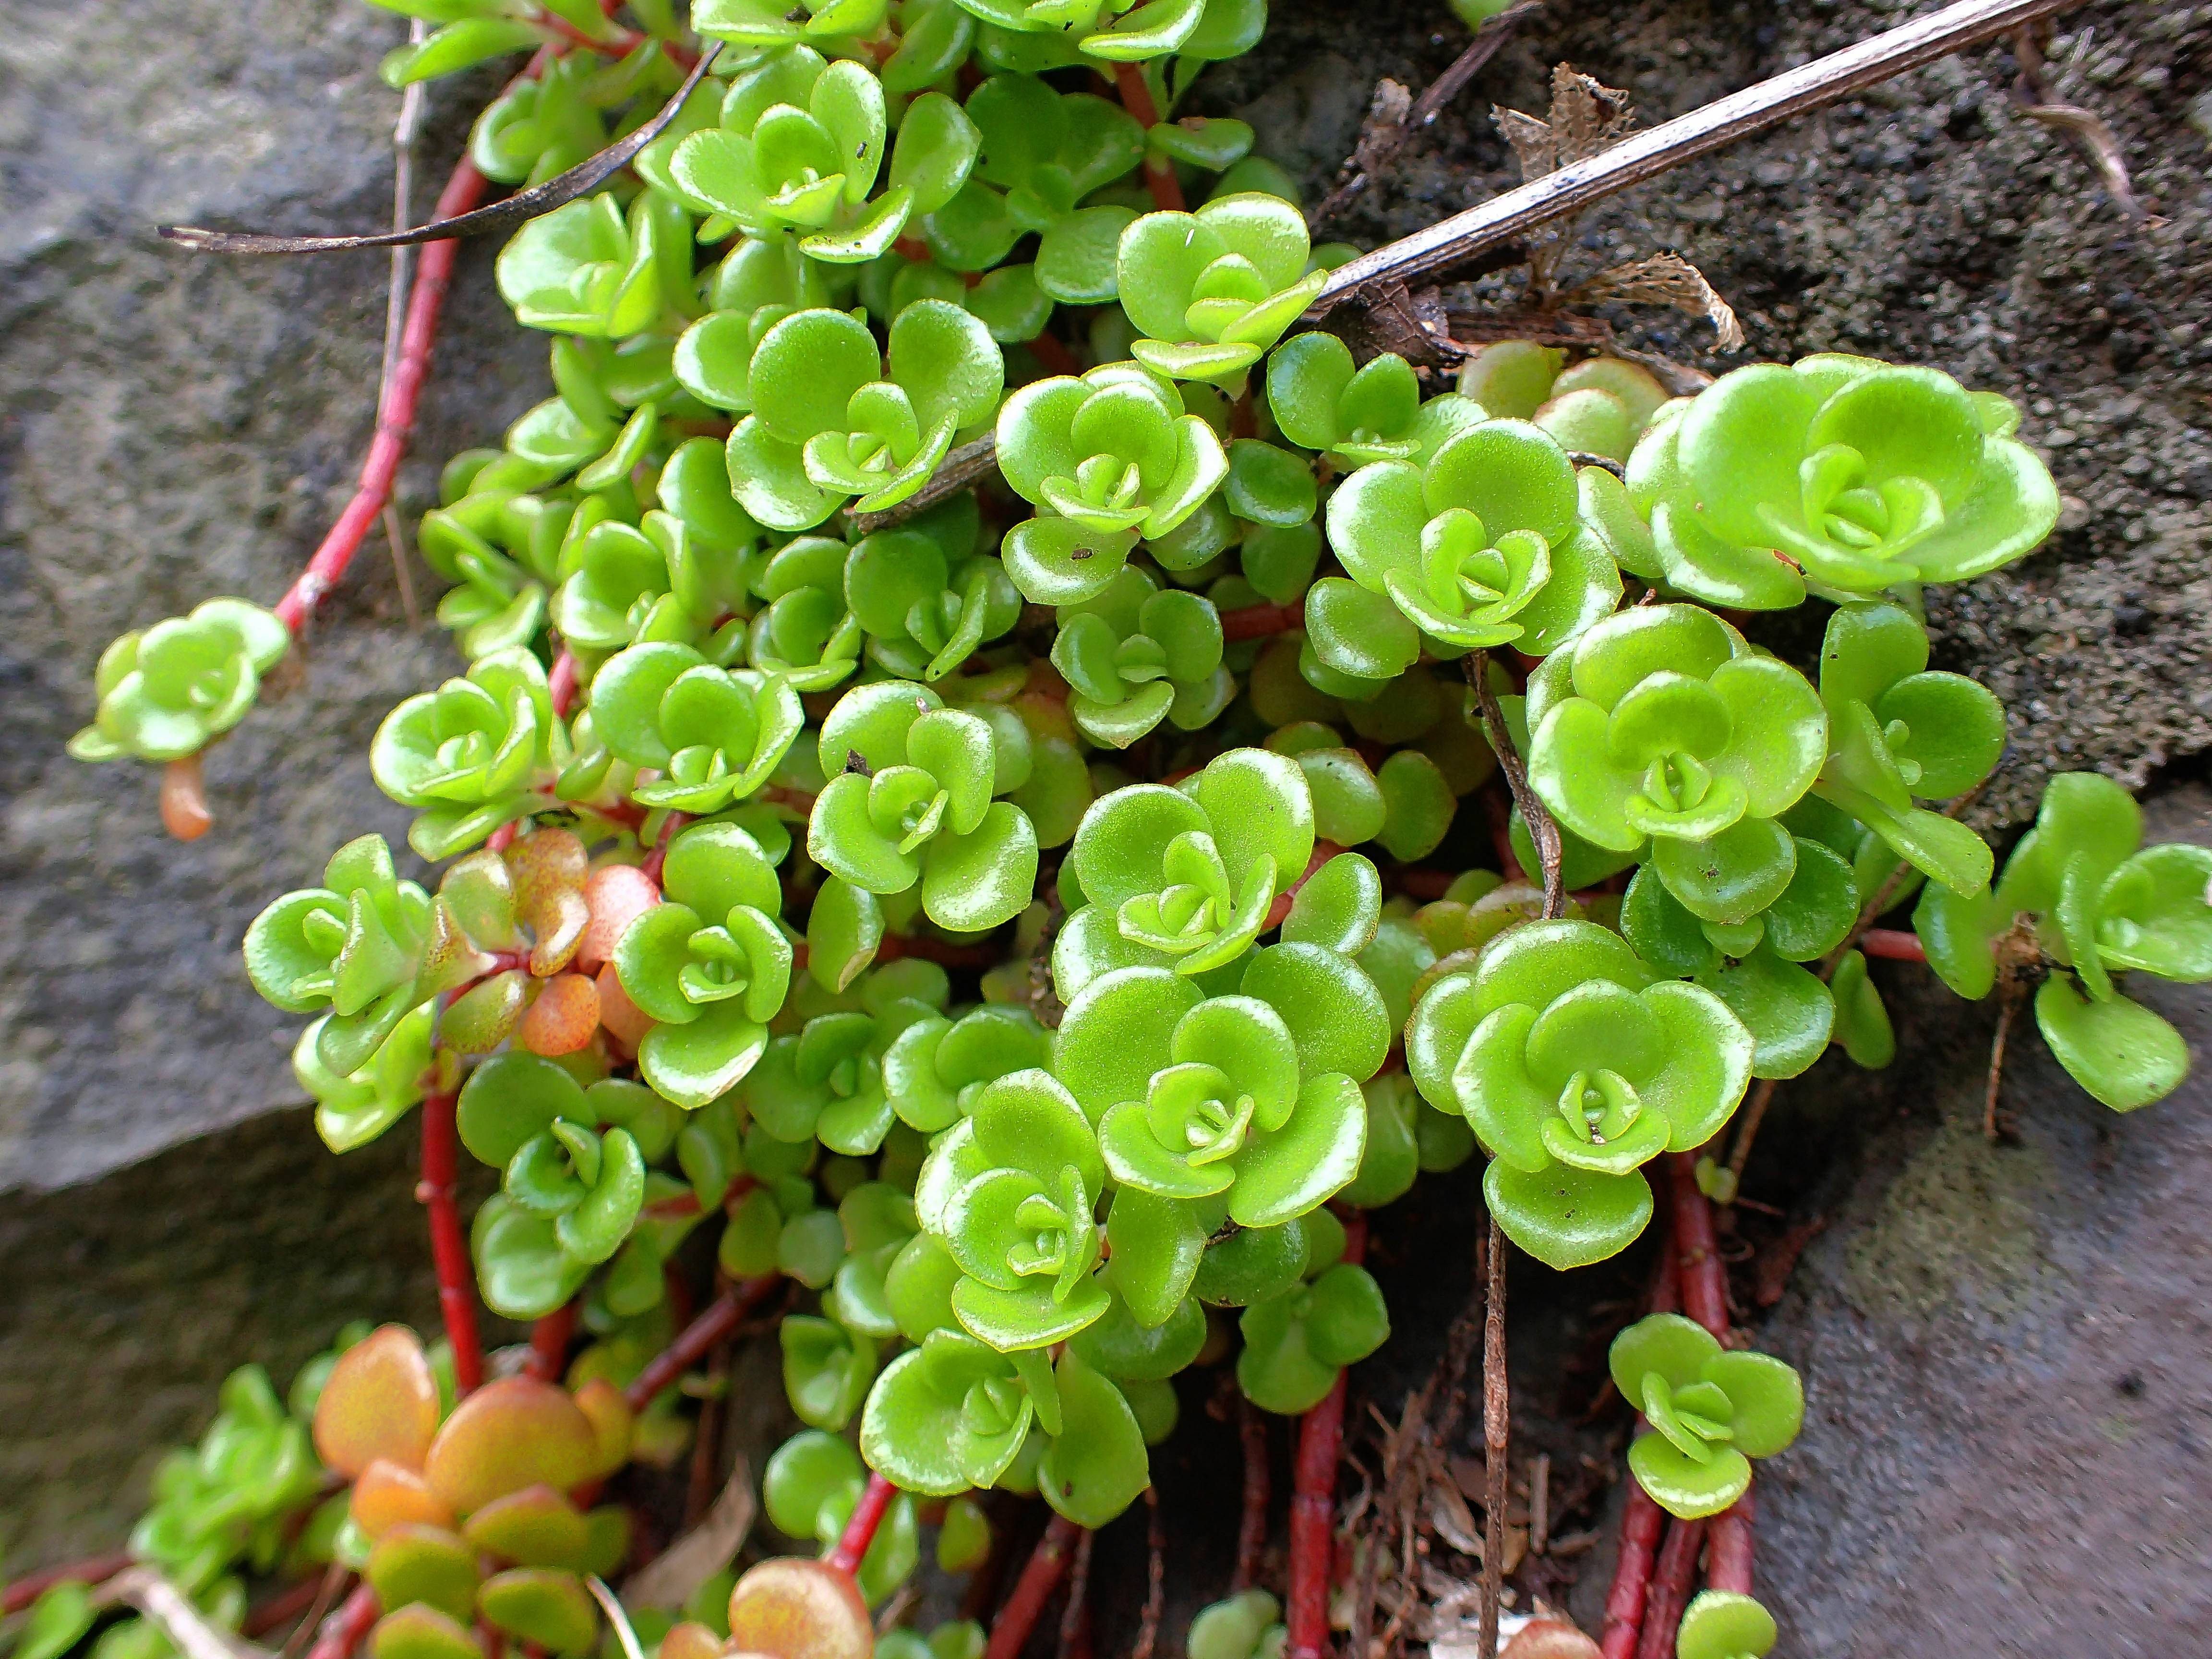 Some Types Of Low Growing Ground Cover, Including Sedum, Are Easy To Grow